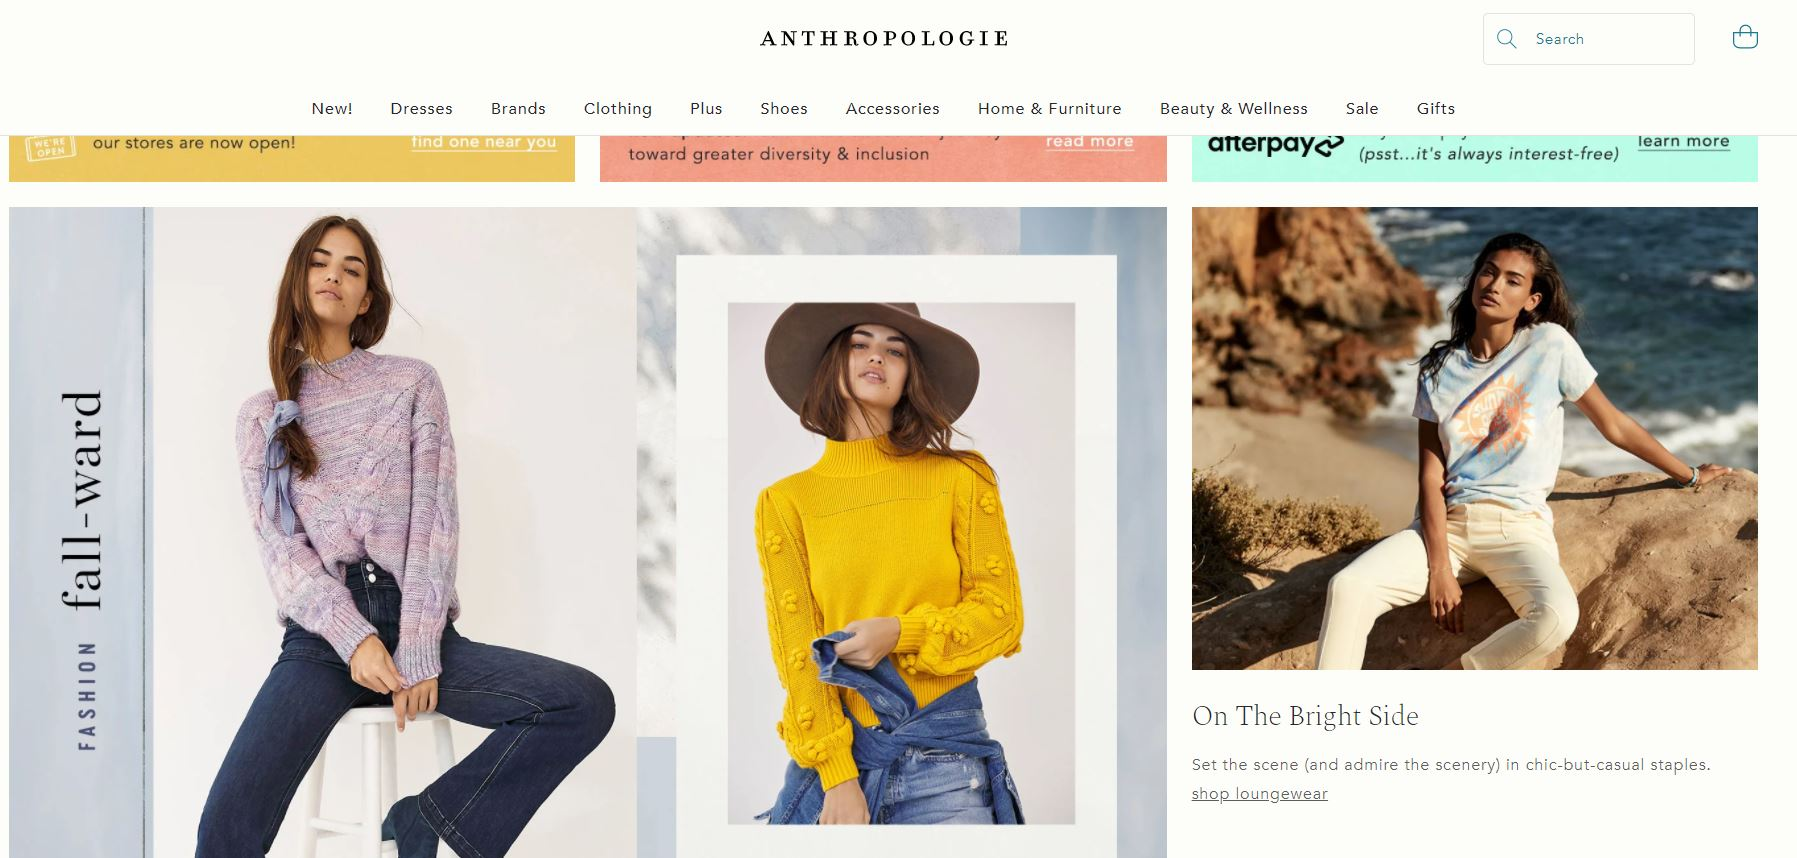 anthropologie - 2